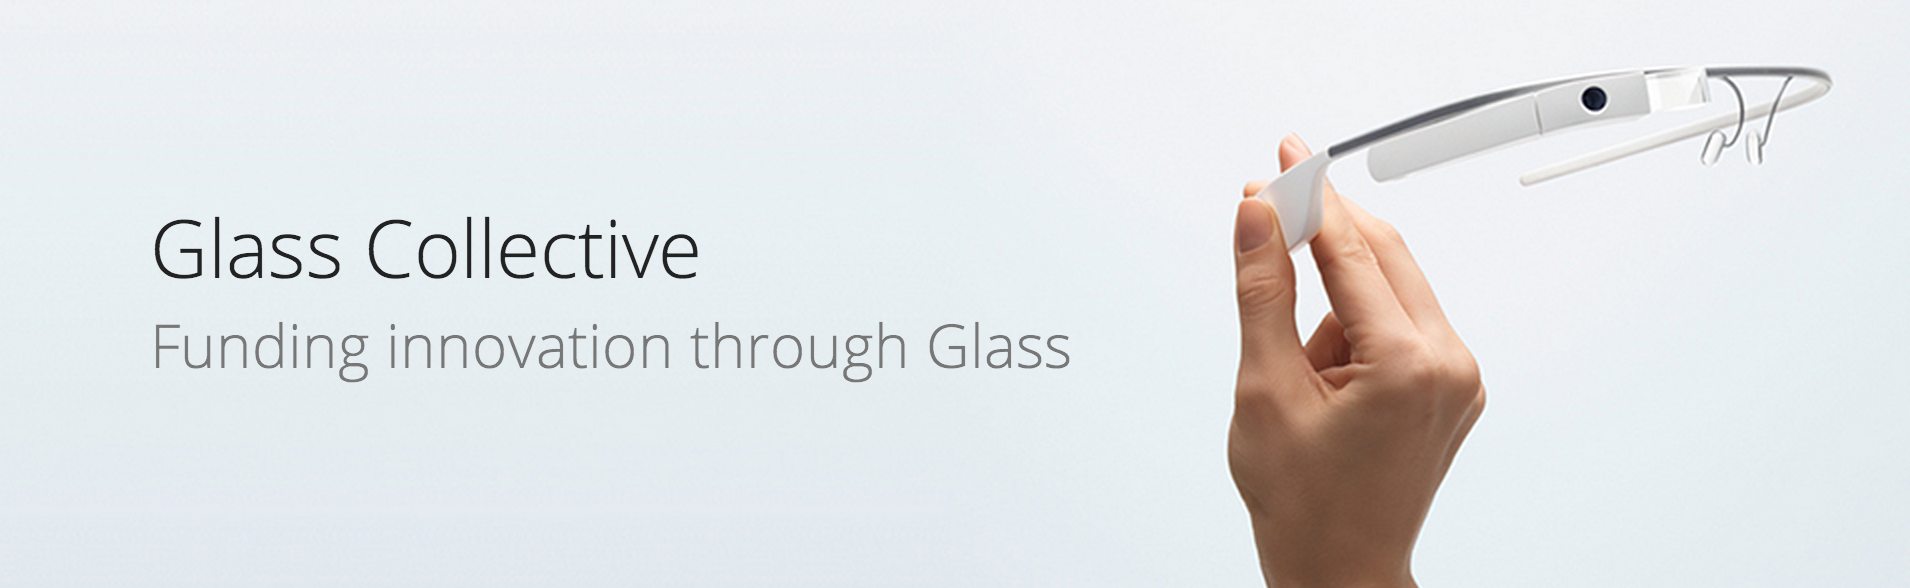 Glass-Collective-seed-fund